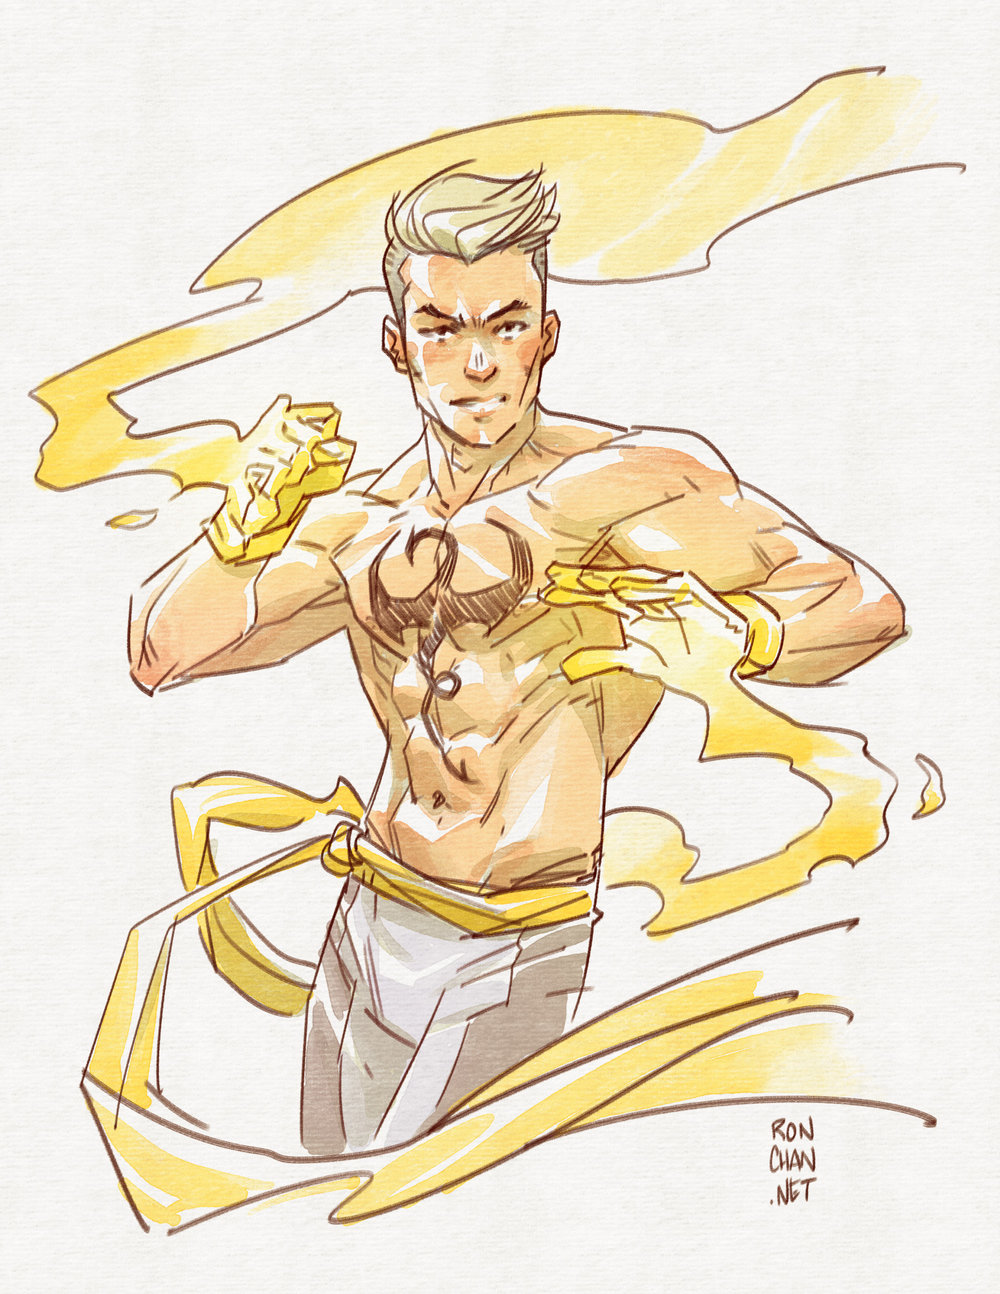 iron-fist-kris-anka-design.jpg